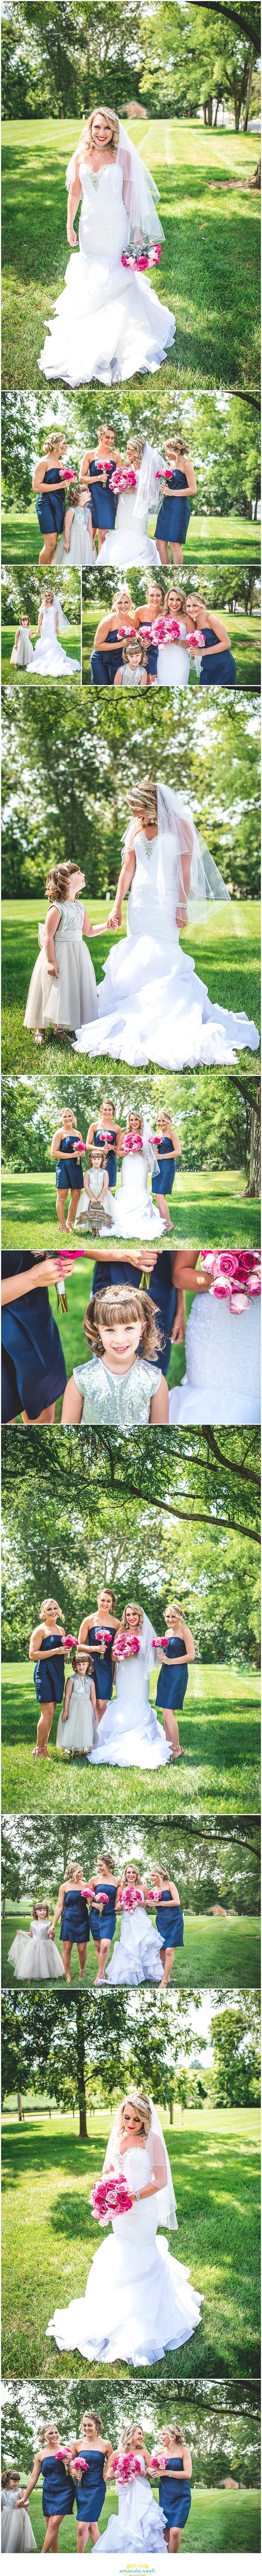 Springfield Ohio wedding bridal party portraits